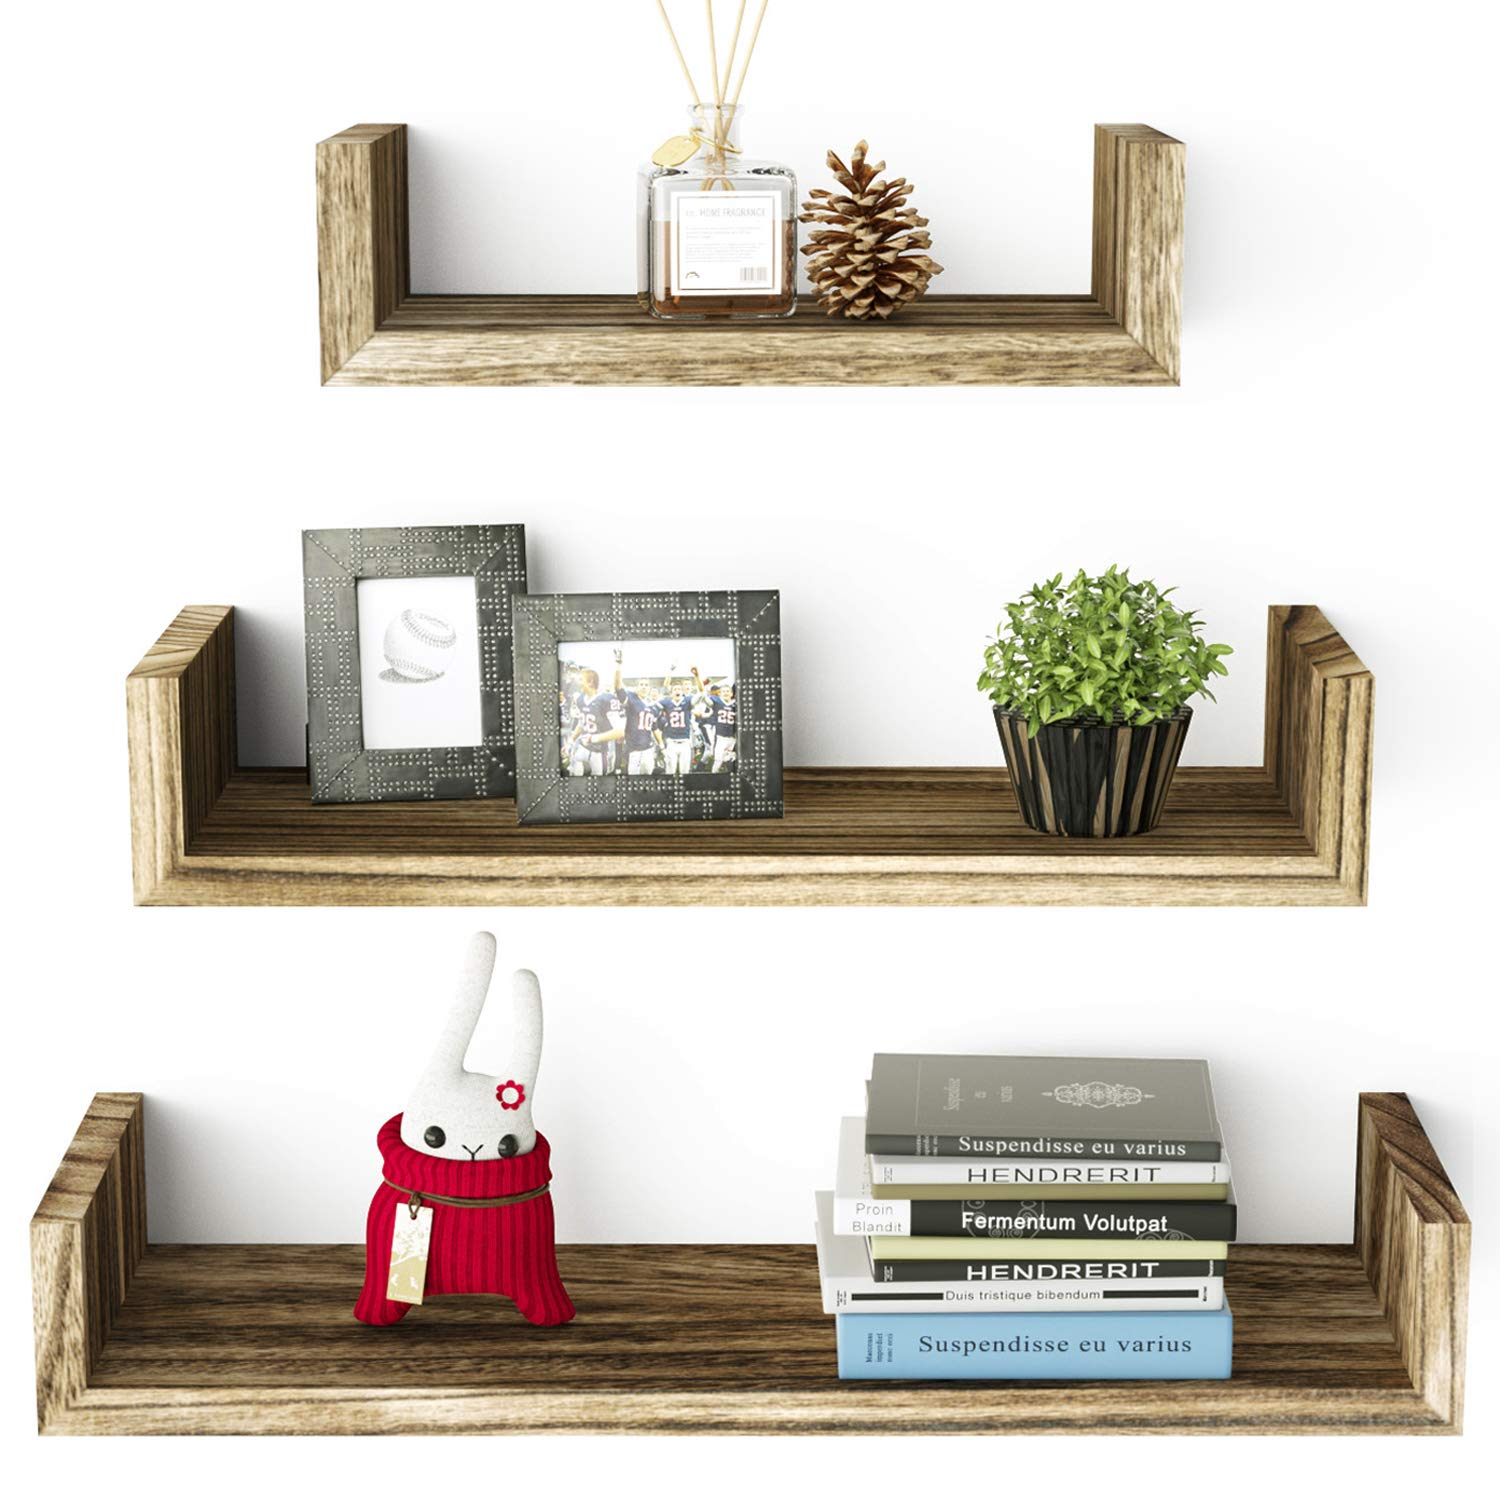 SRIWATANA Floating Shelves Wall Mounted, Solid Wood Wall Shelves Set of 3(Carbonized Black) by SRIWATANA